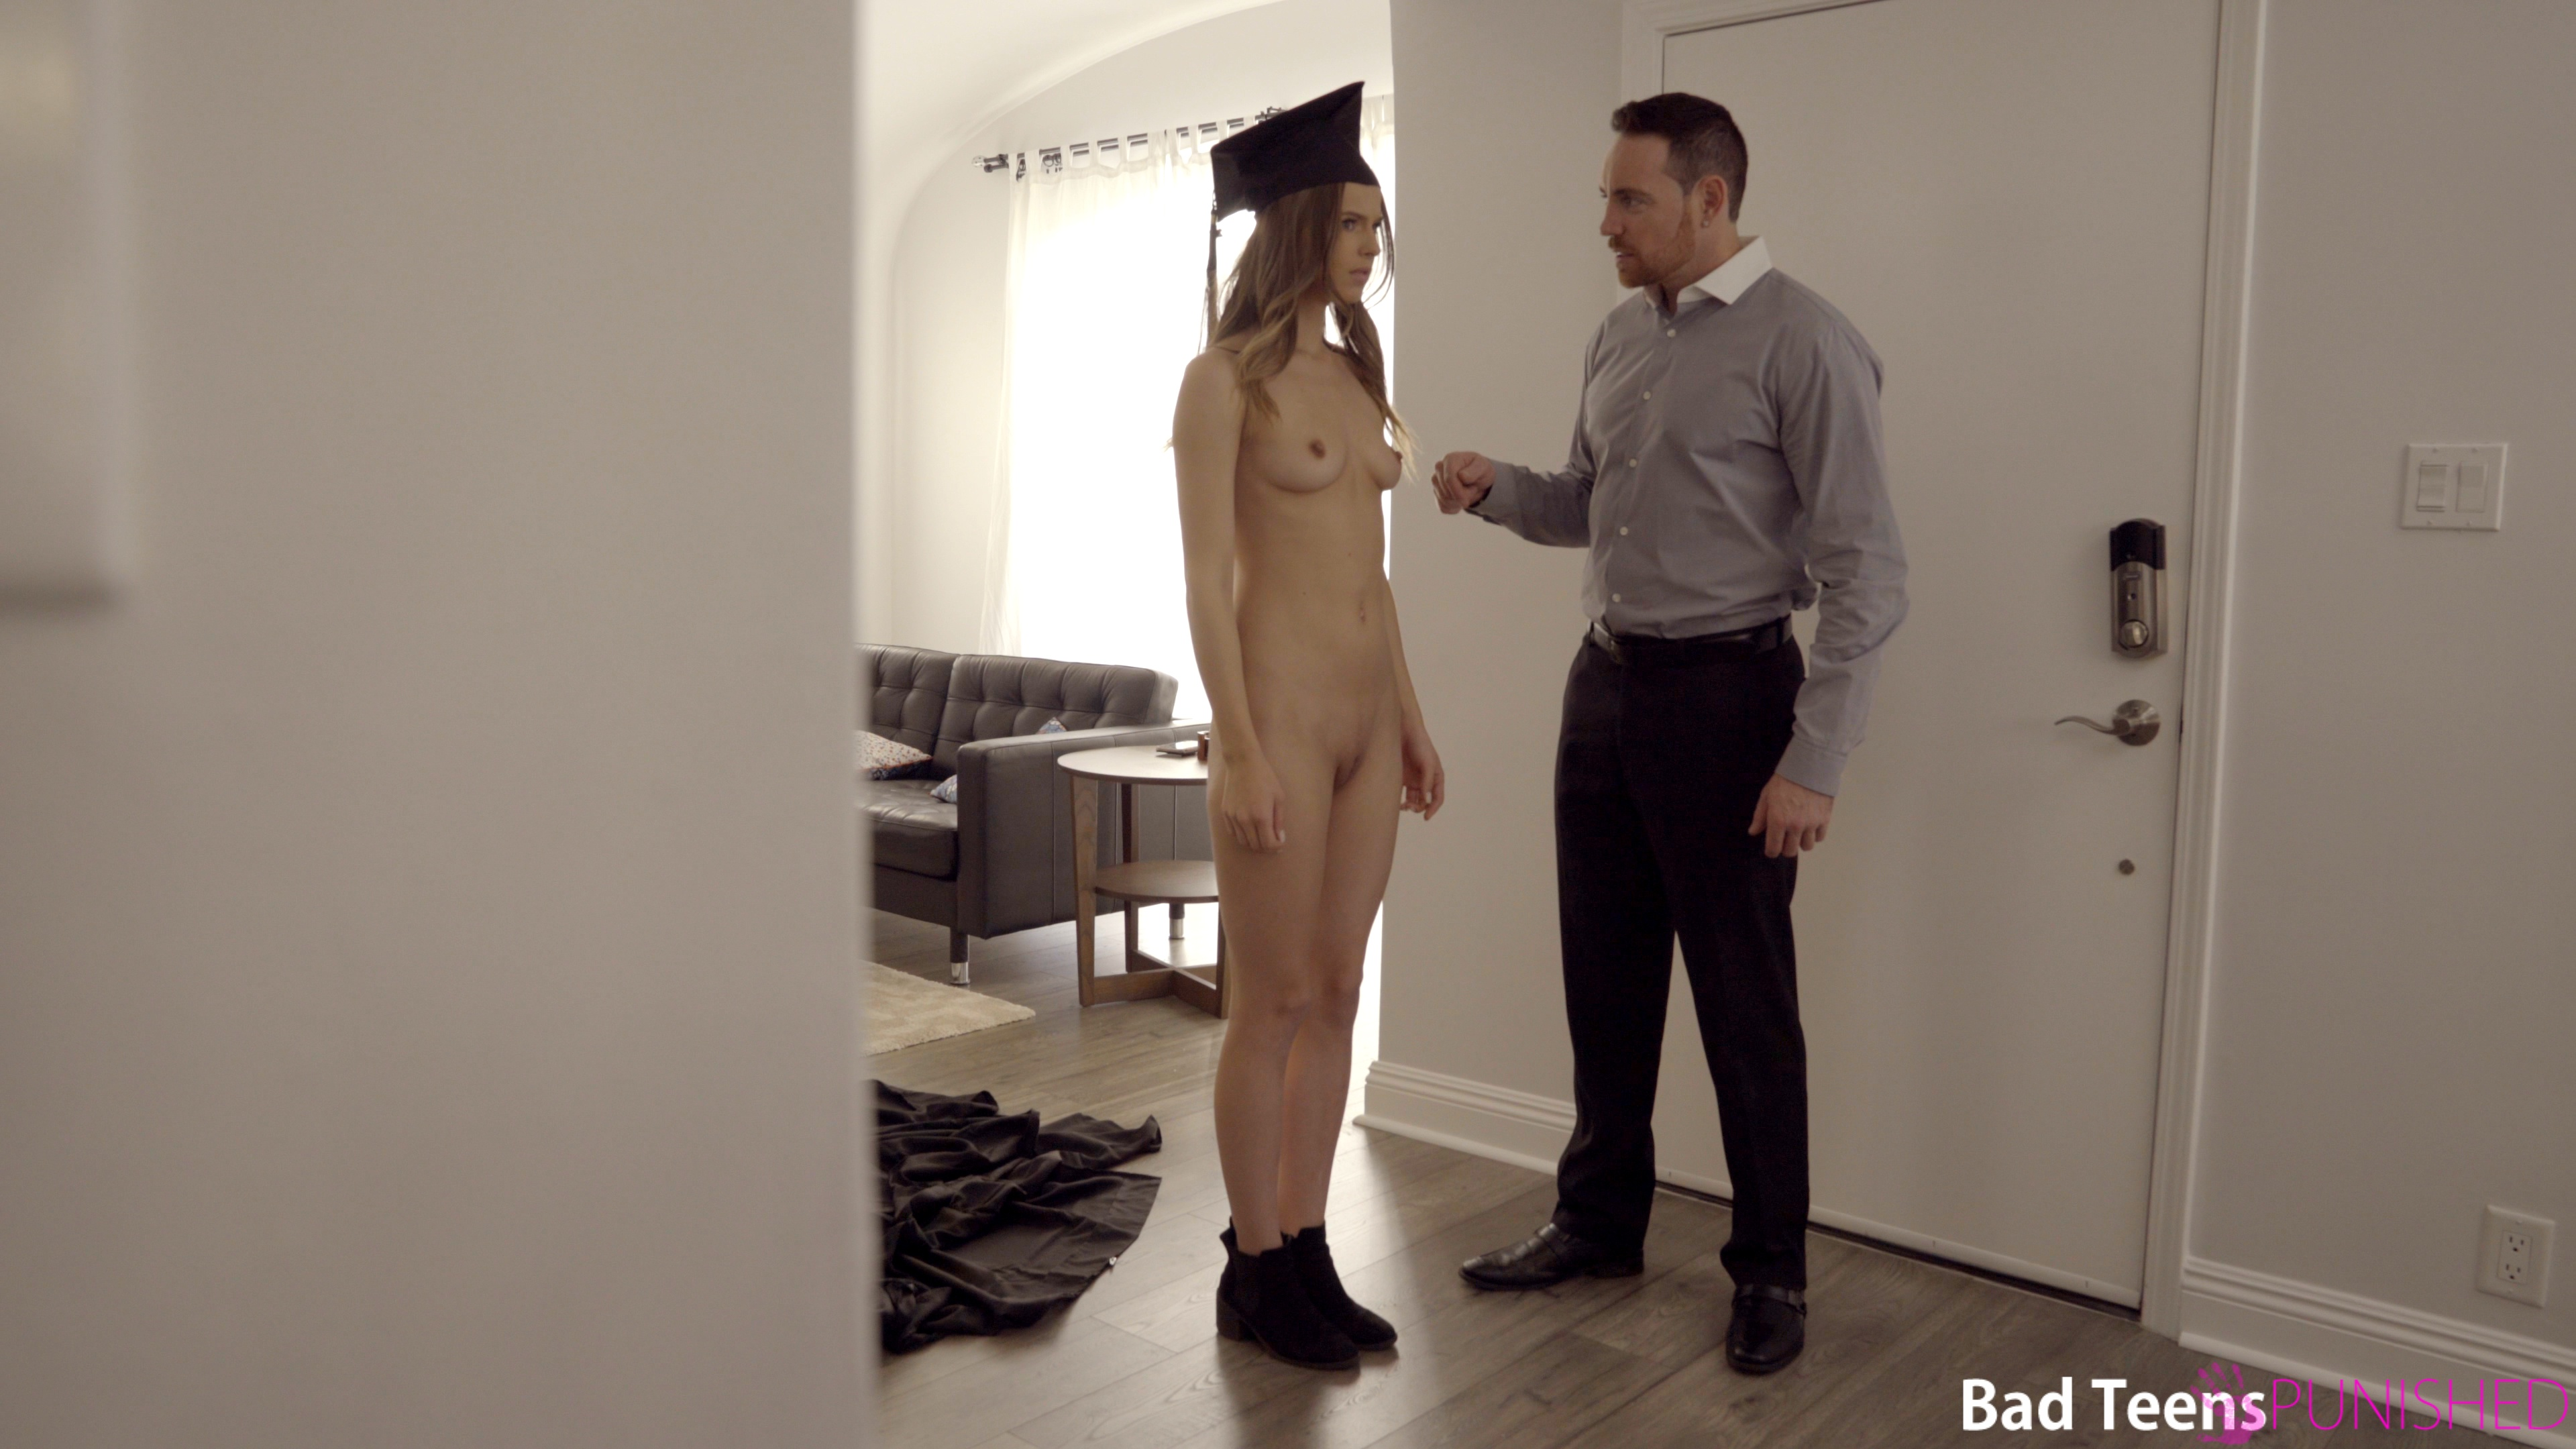 BadTeensPunished.com - Jillian Janson: Shameful Behavior - S5:E6